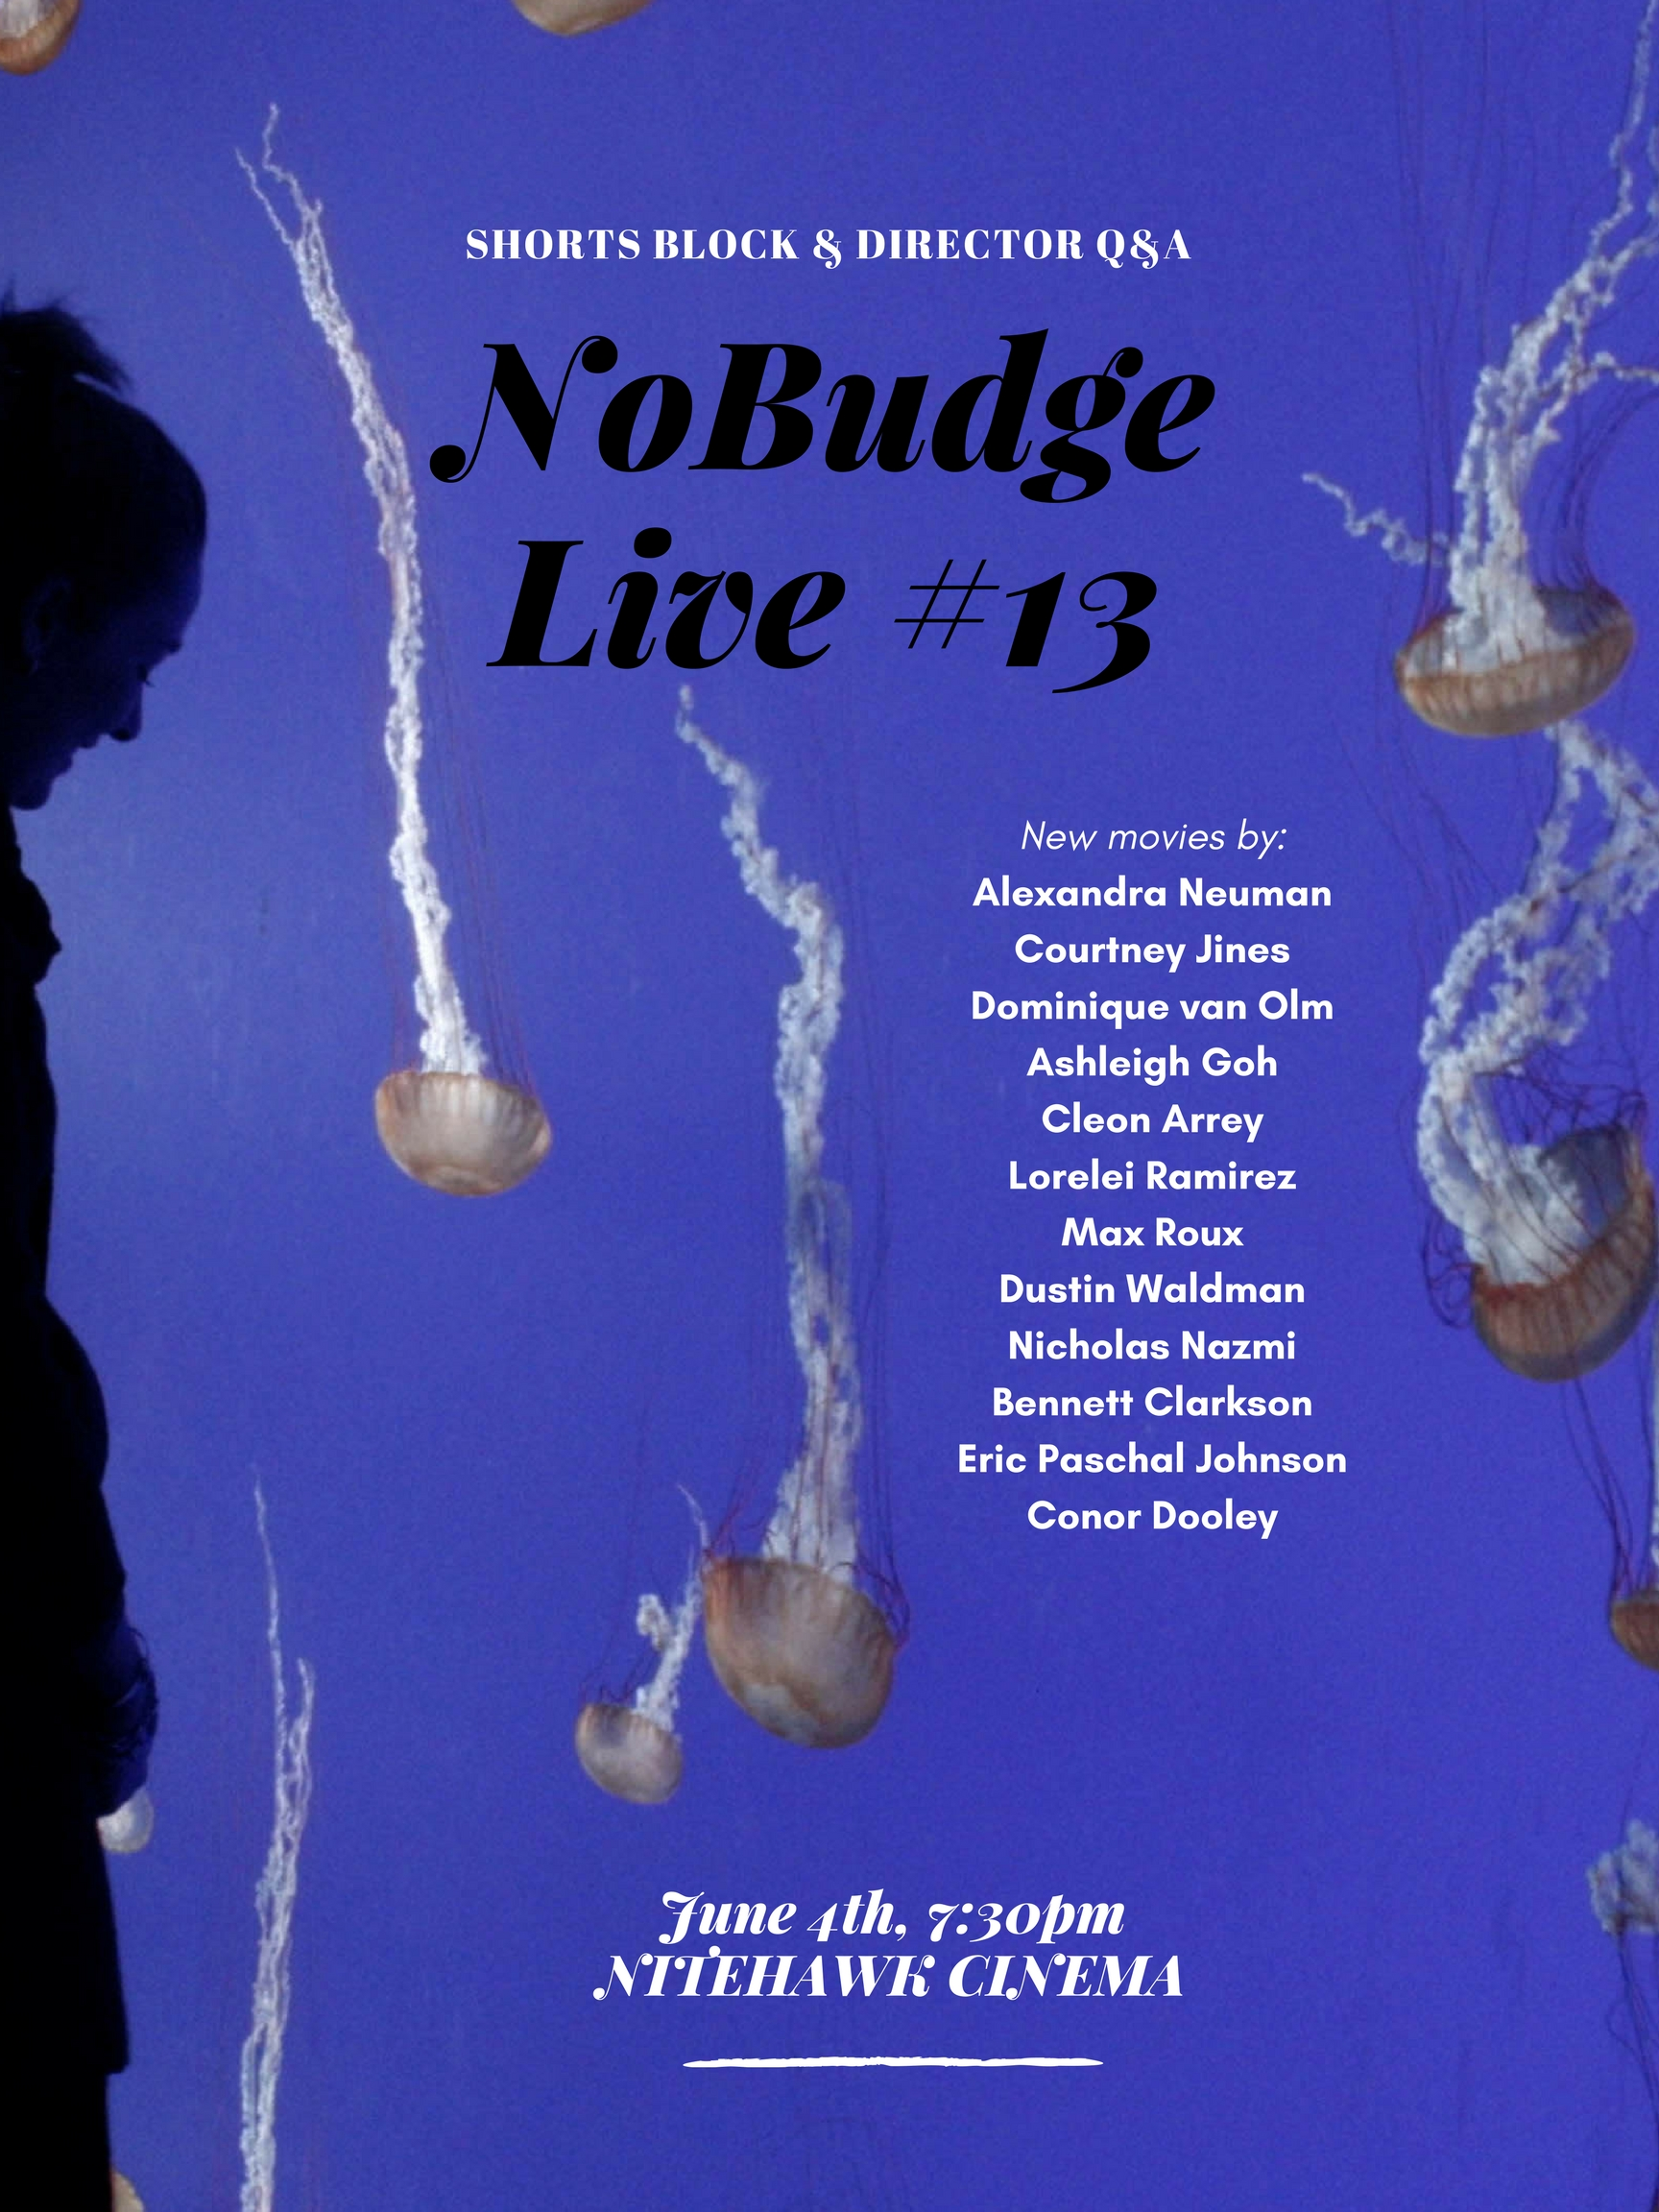 Poster for NoBudge Live #13